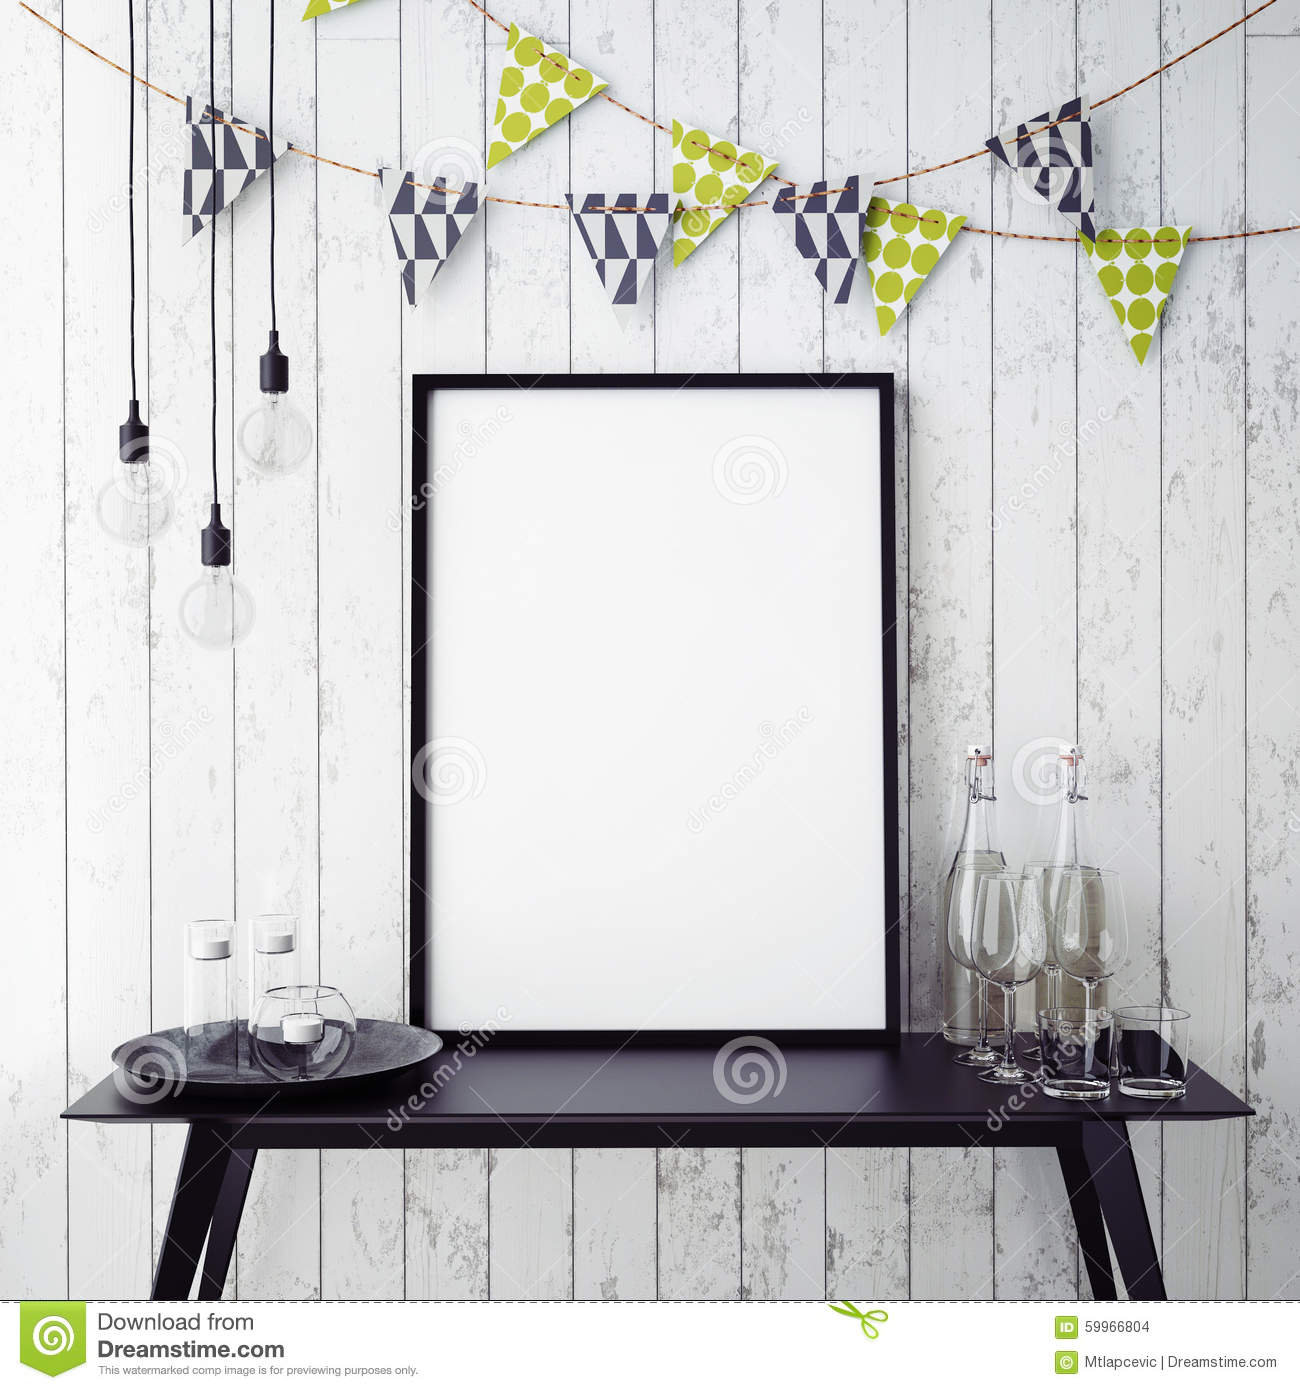 Affiche Decoration Interieur Affiche Decoration Interieur Free Recherche Decoration